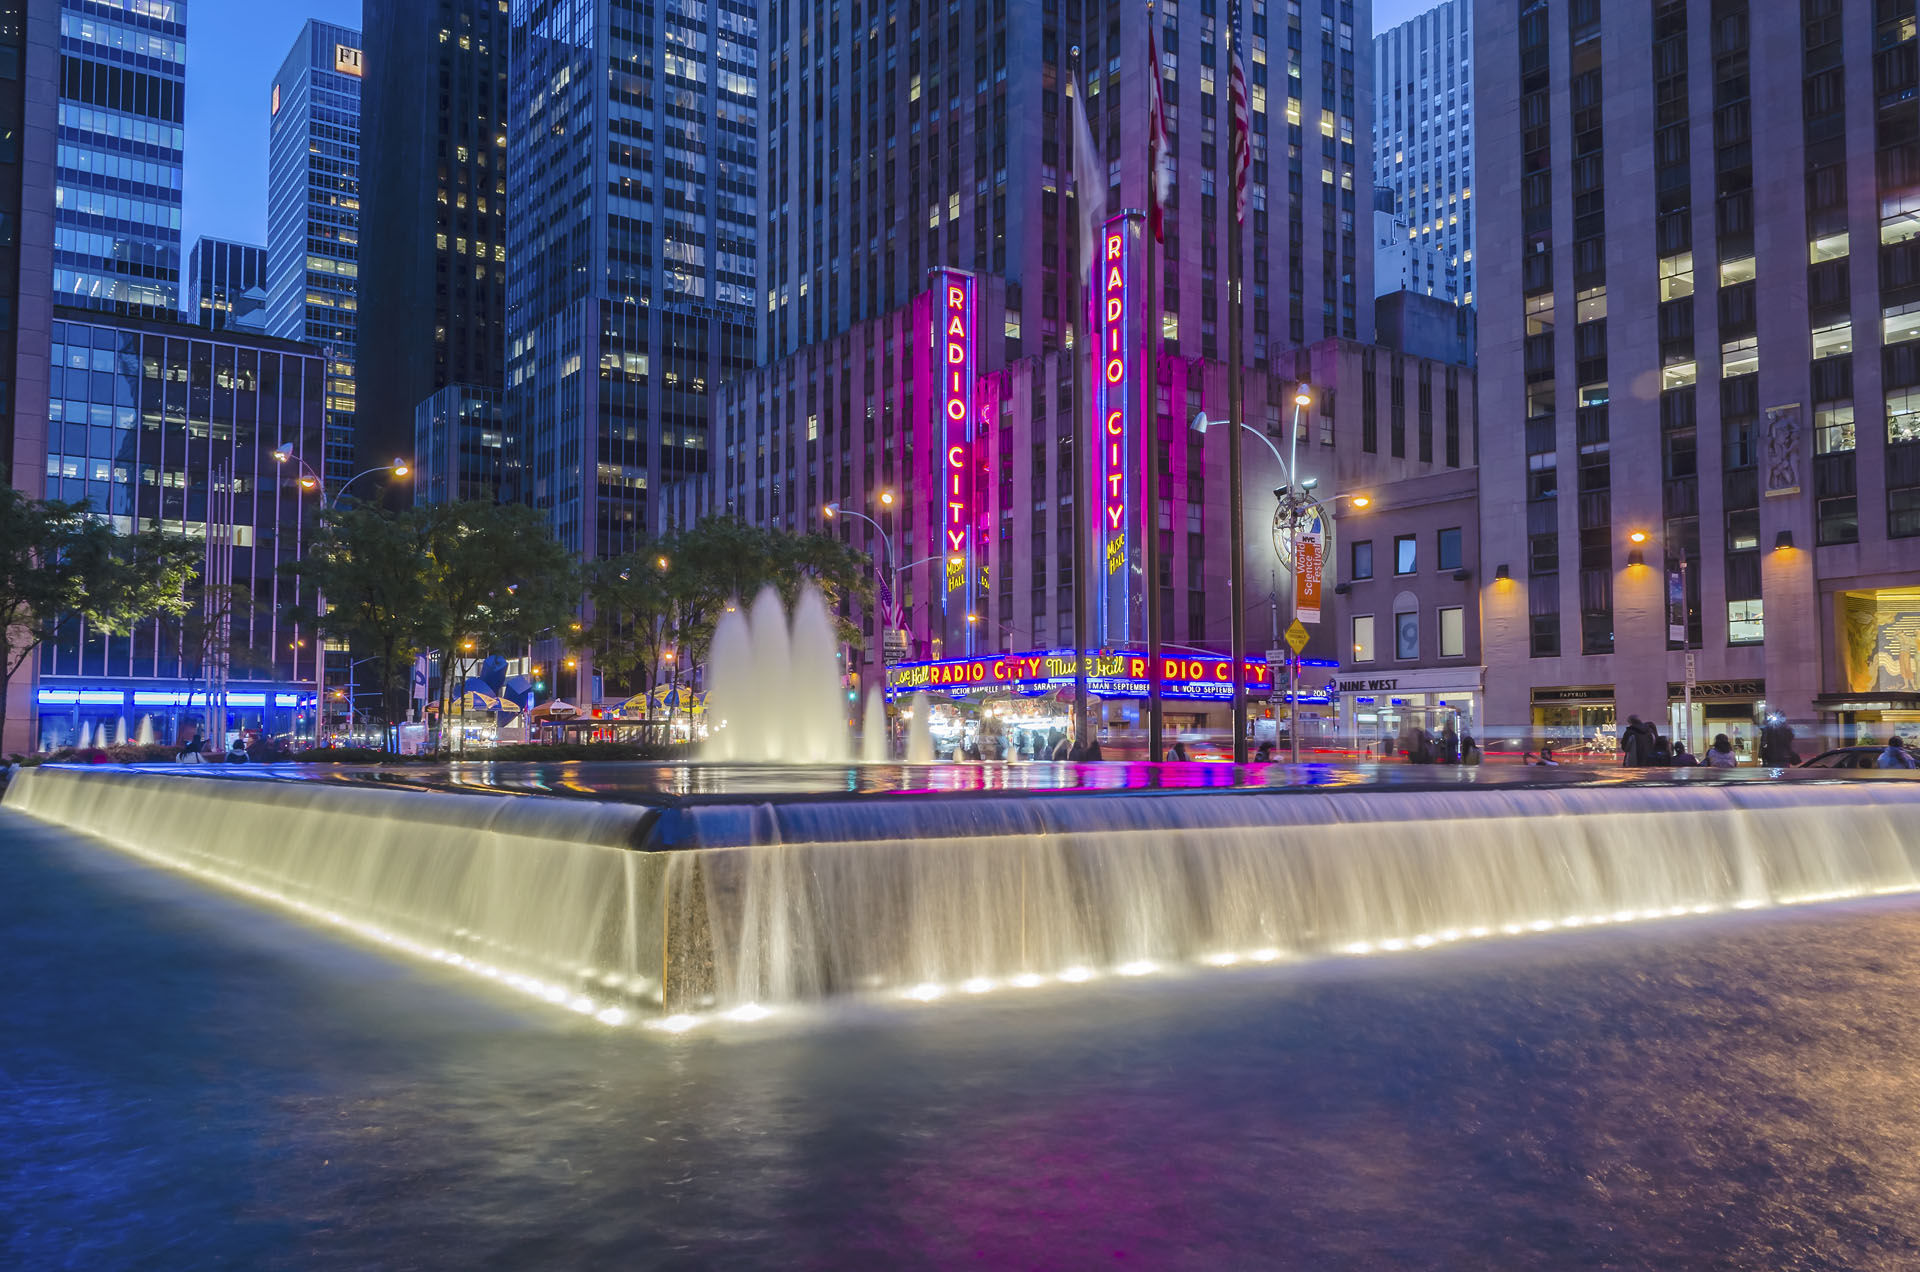 Radio City Music Hall at night, New York City, USA